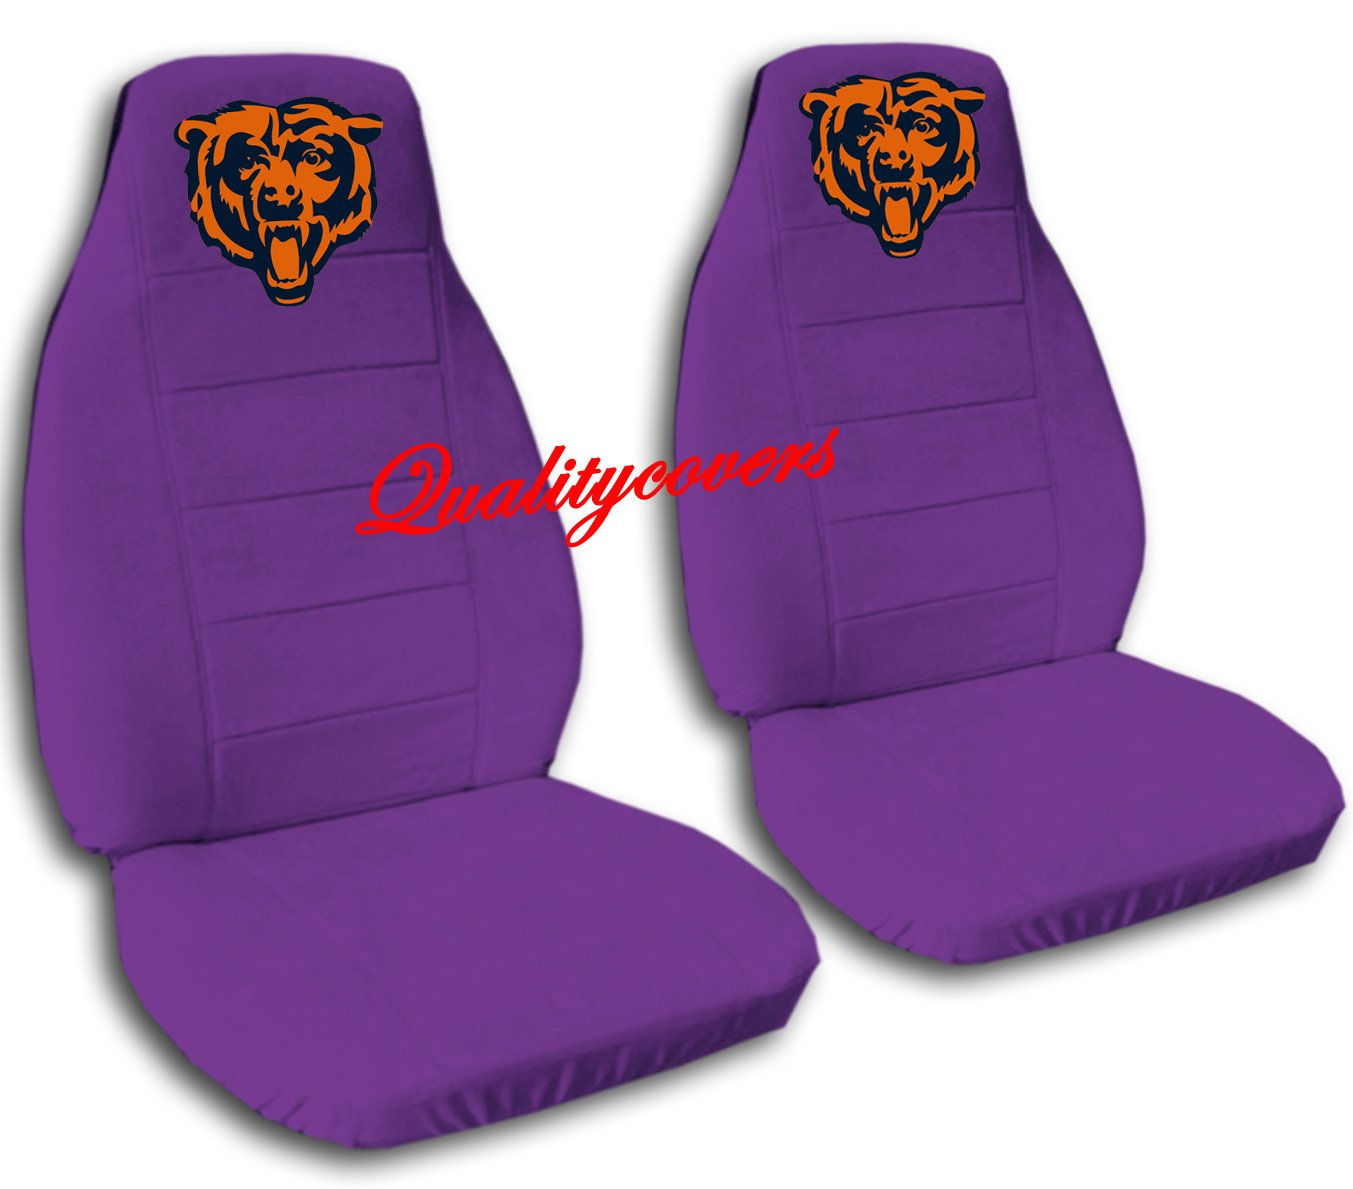 Purple Chicago seat covers. 40/20/40 seat covers for a 2007 to 2012 Chevy Silverado. Side airbag friendly.